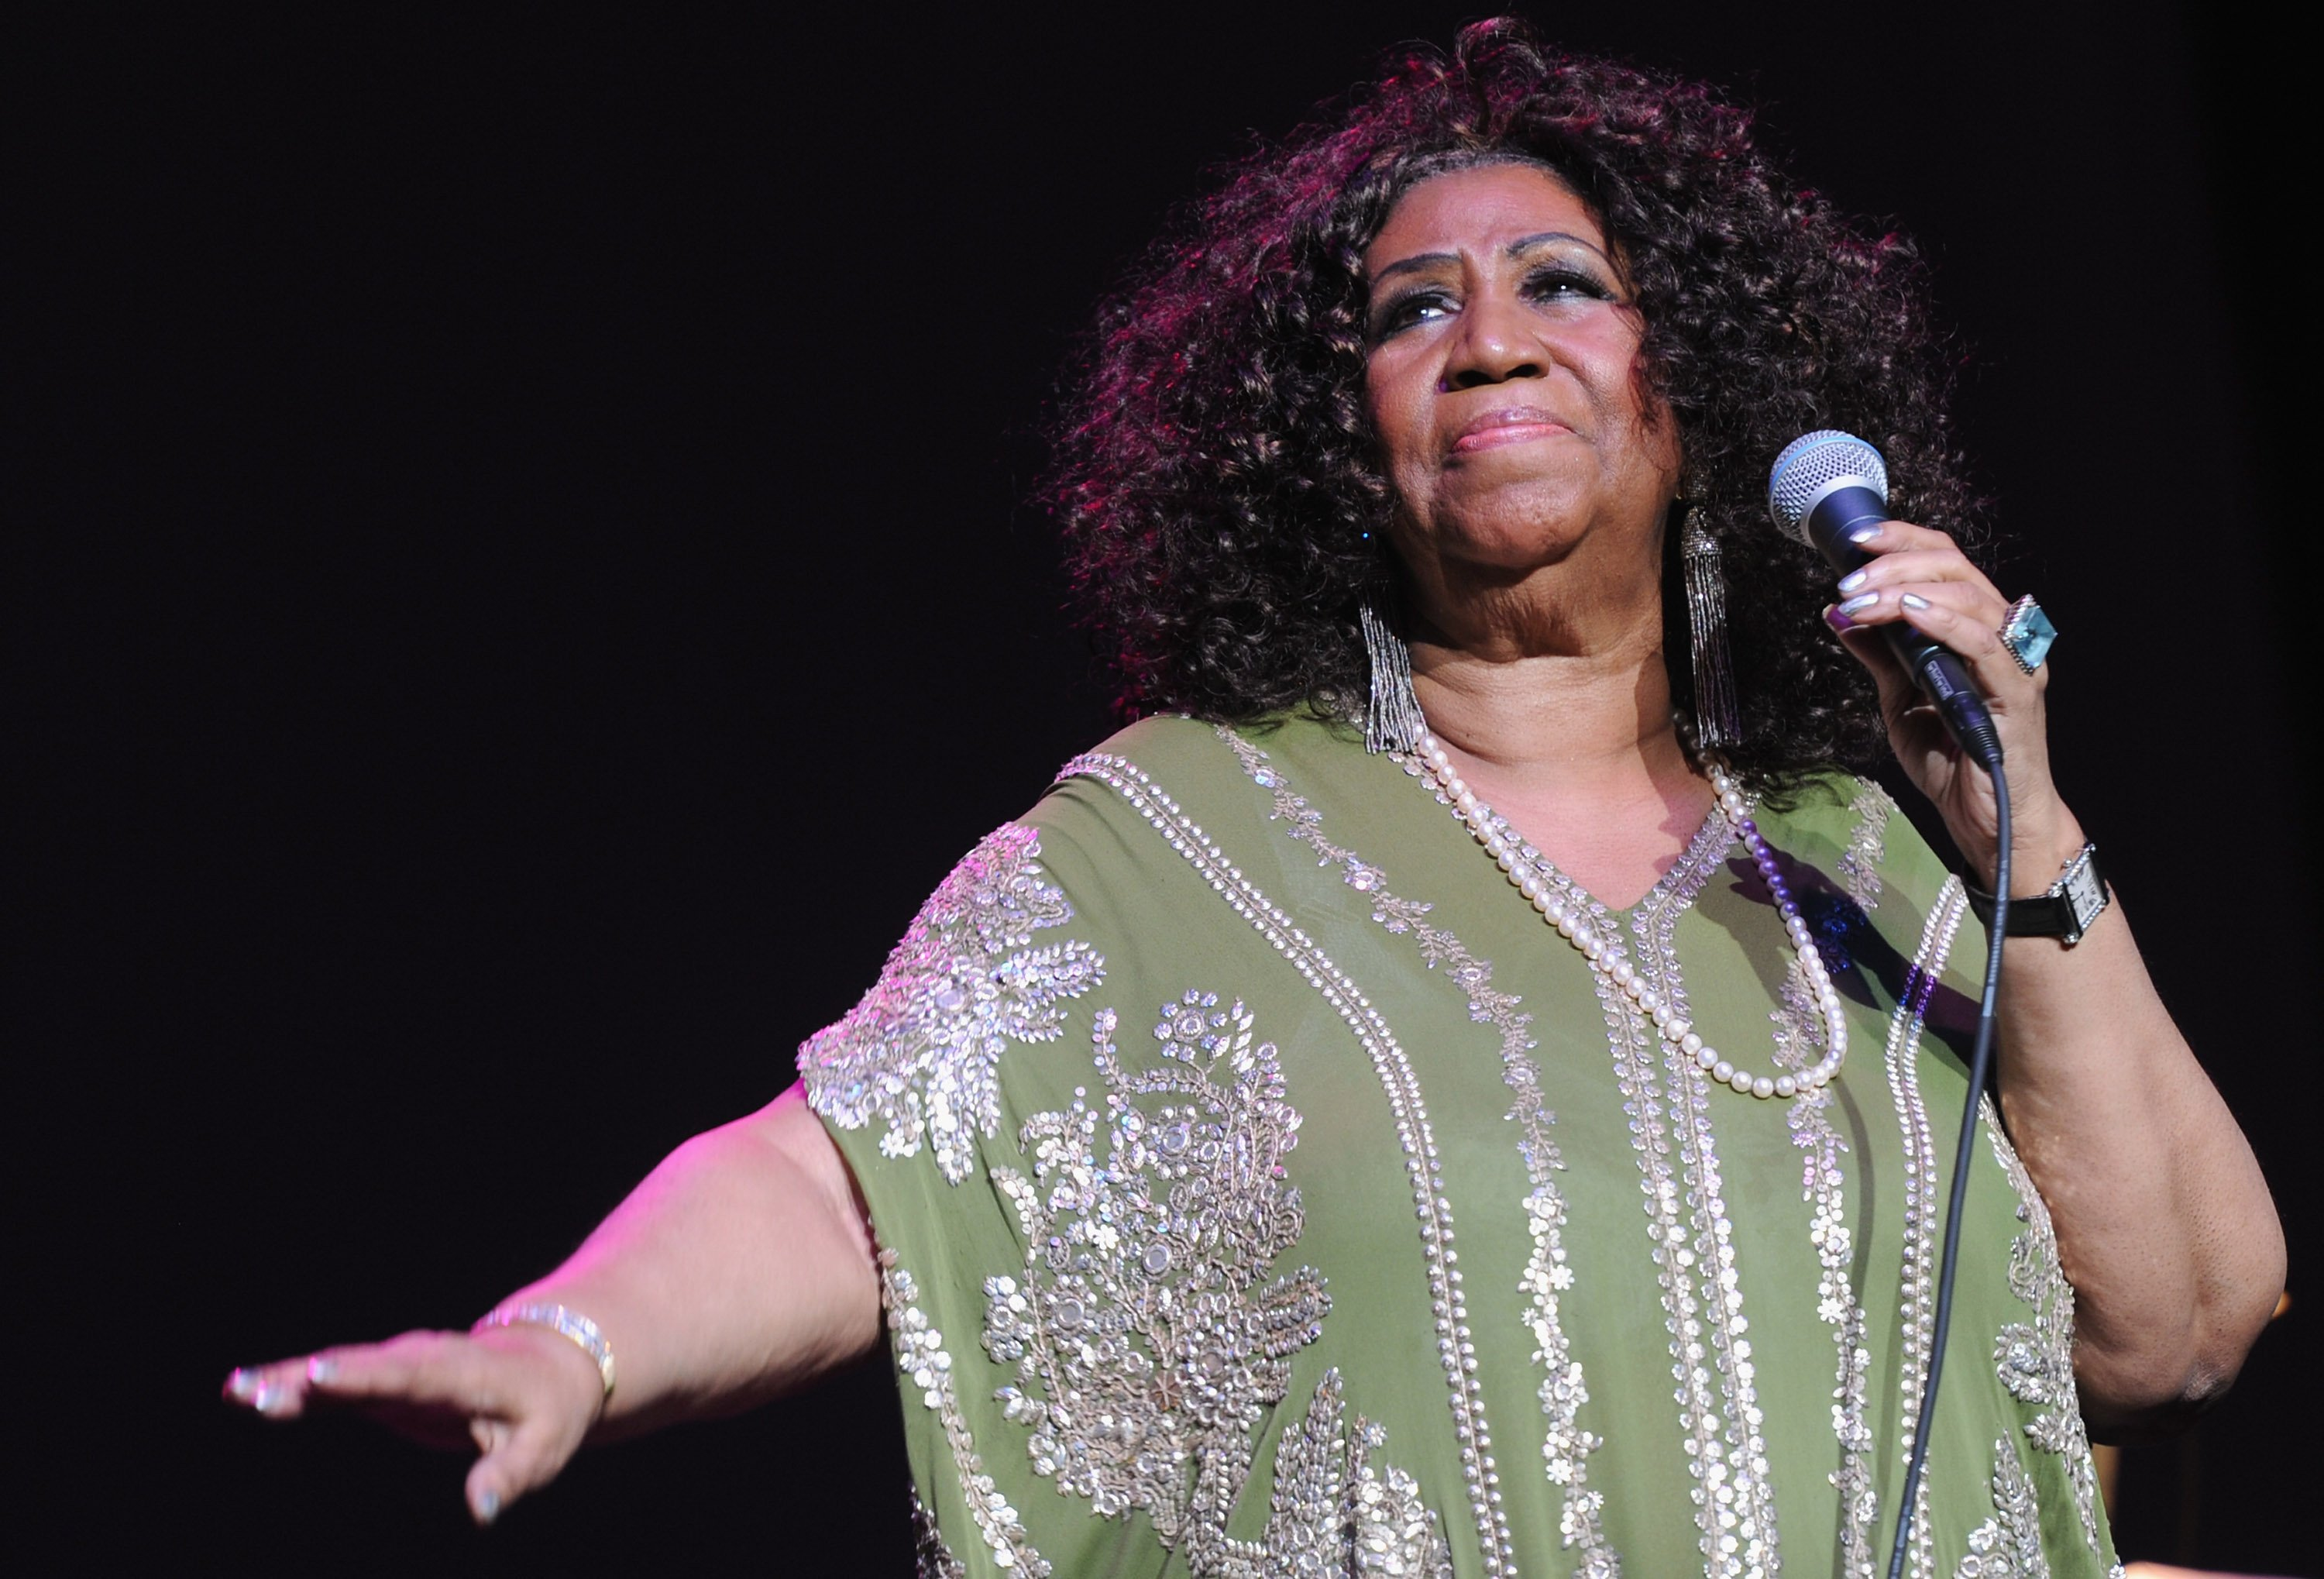 Aretha Franklin performing at the Fox Theatre in Atlanta, Georgia on March 5, 2012. | Source: Getty Images